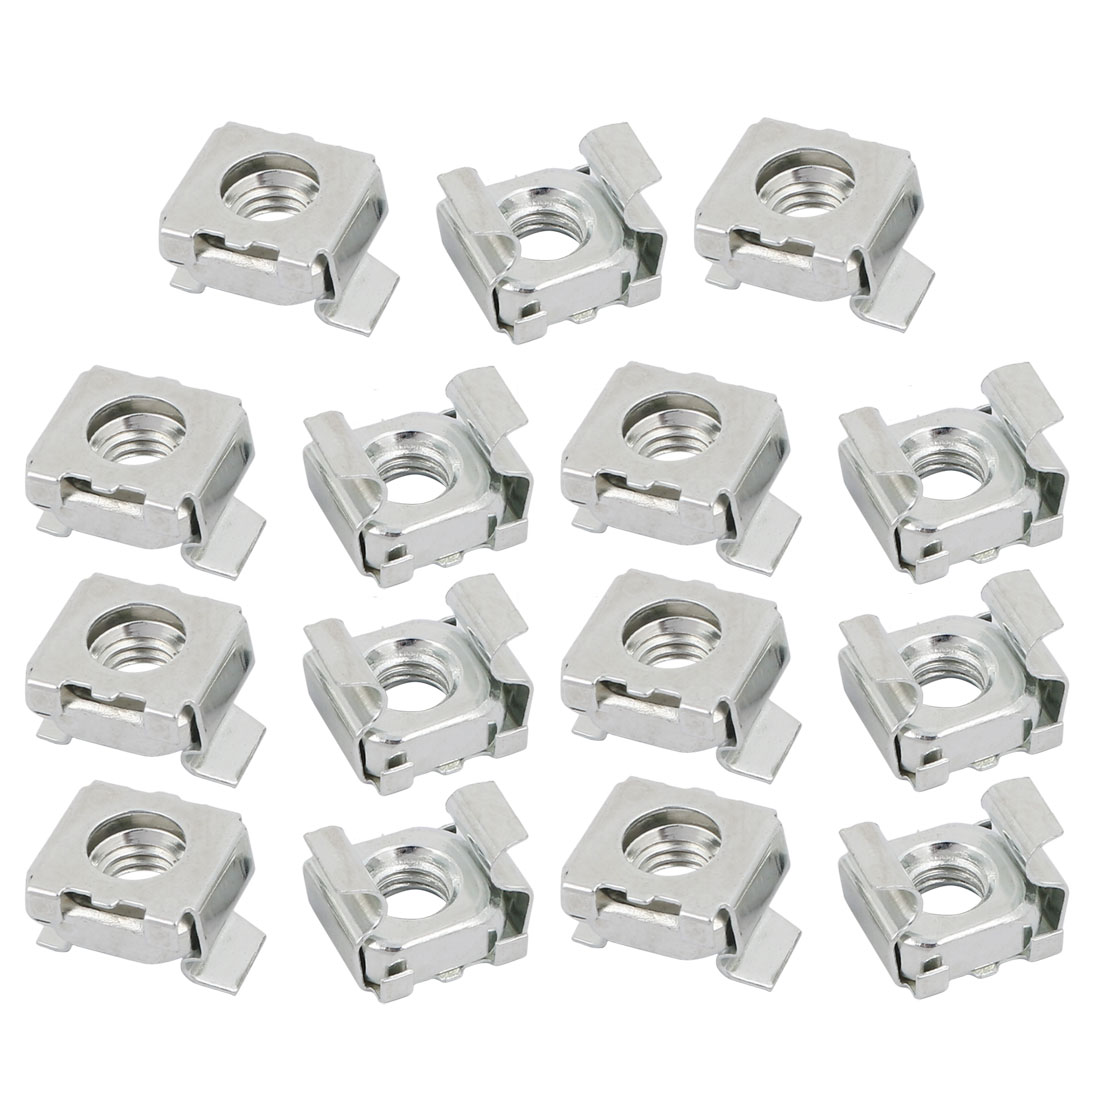 15pcs M6 Carbon Steel Zinc Plated Cage Nut Silver Tone for Server Shelf Cabinet